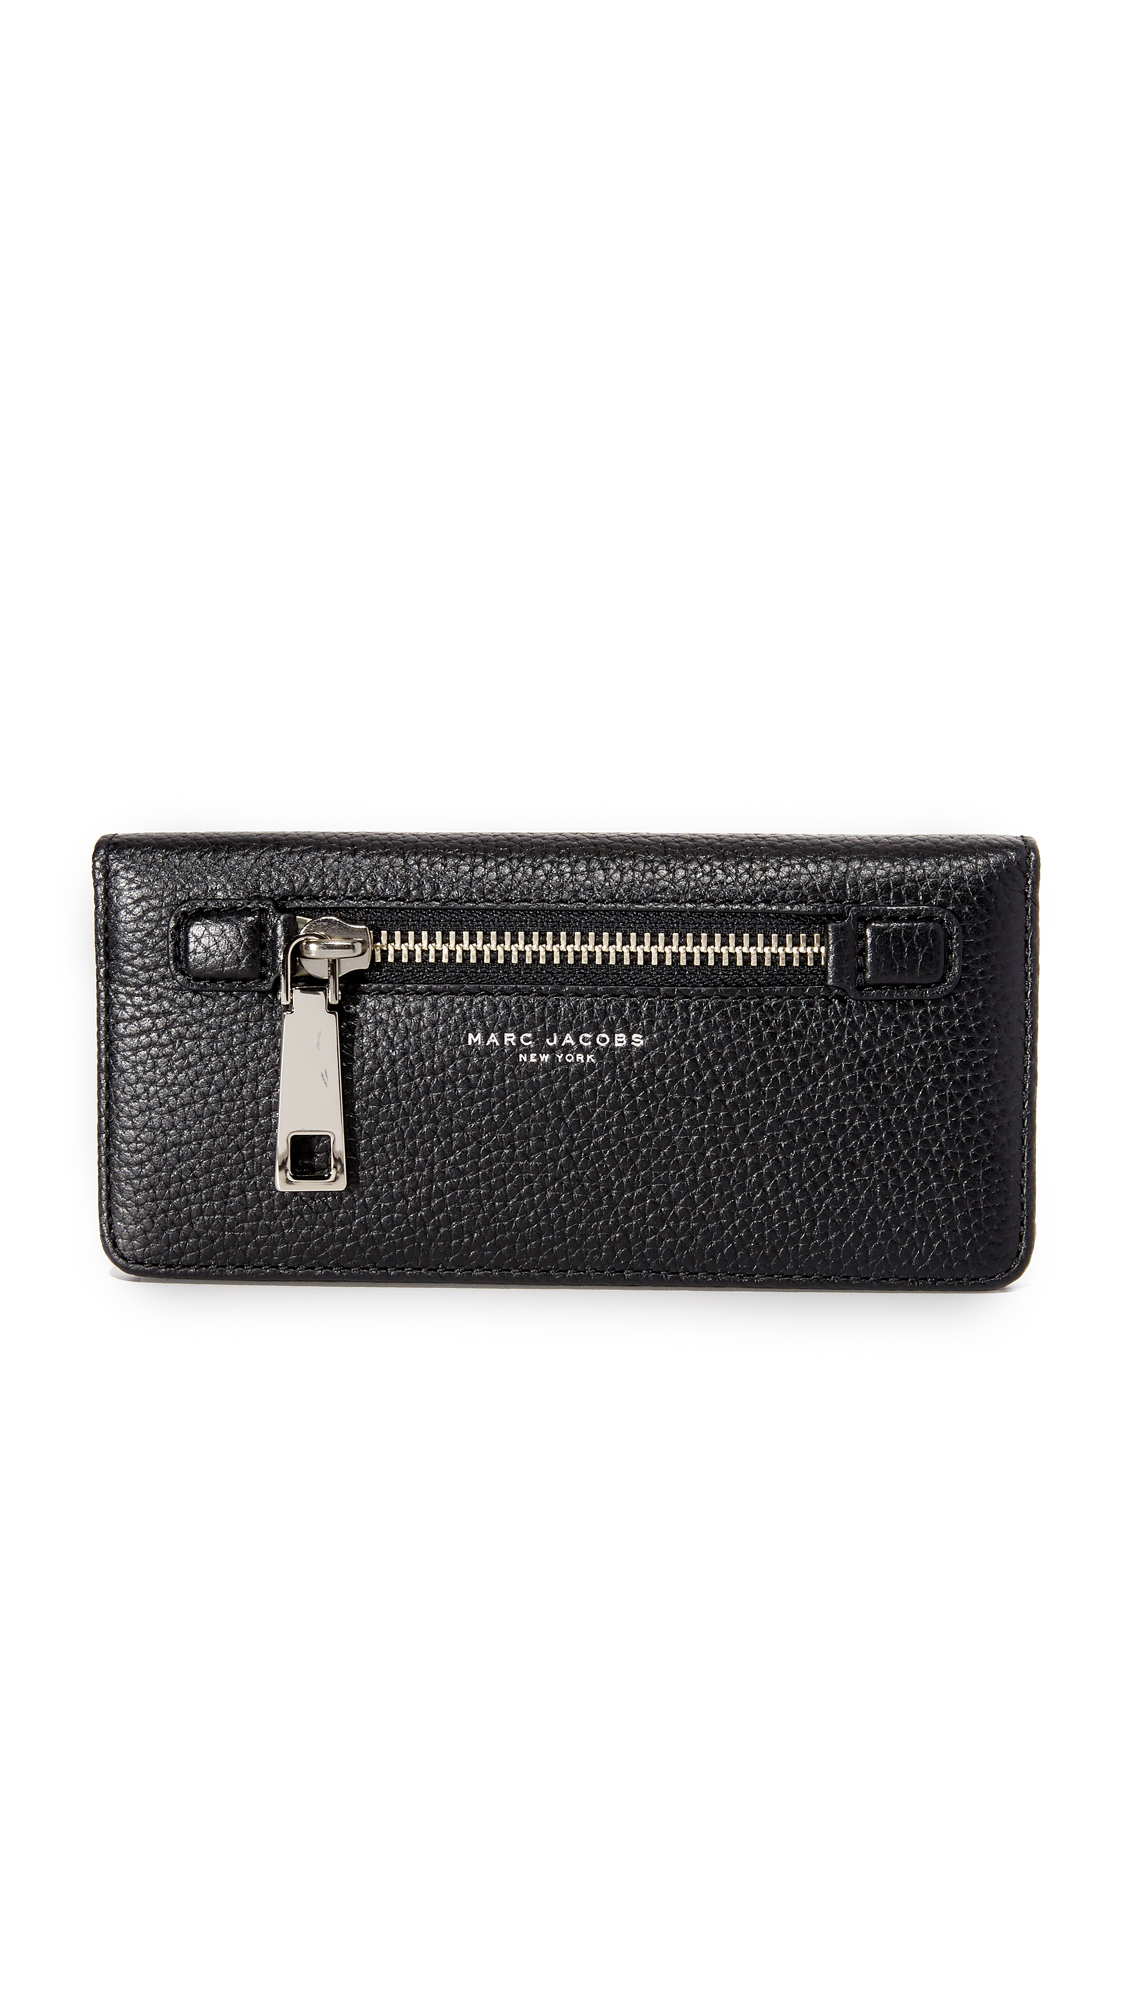 Marc Jacobs Gotham Open Face Wallet - Black